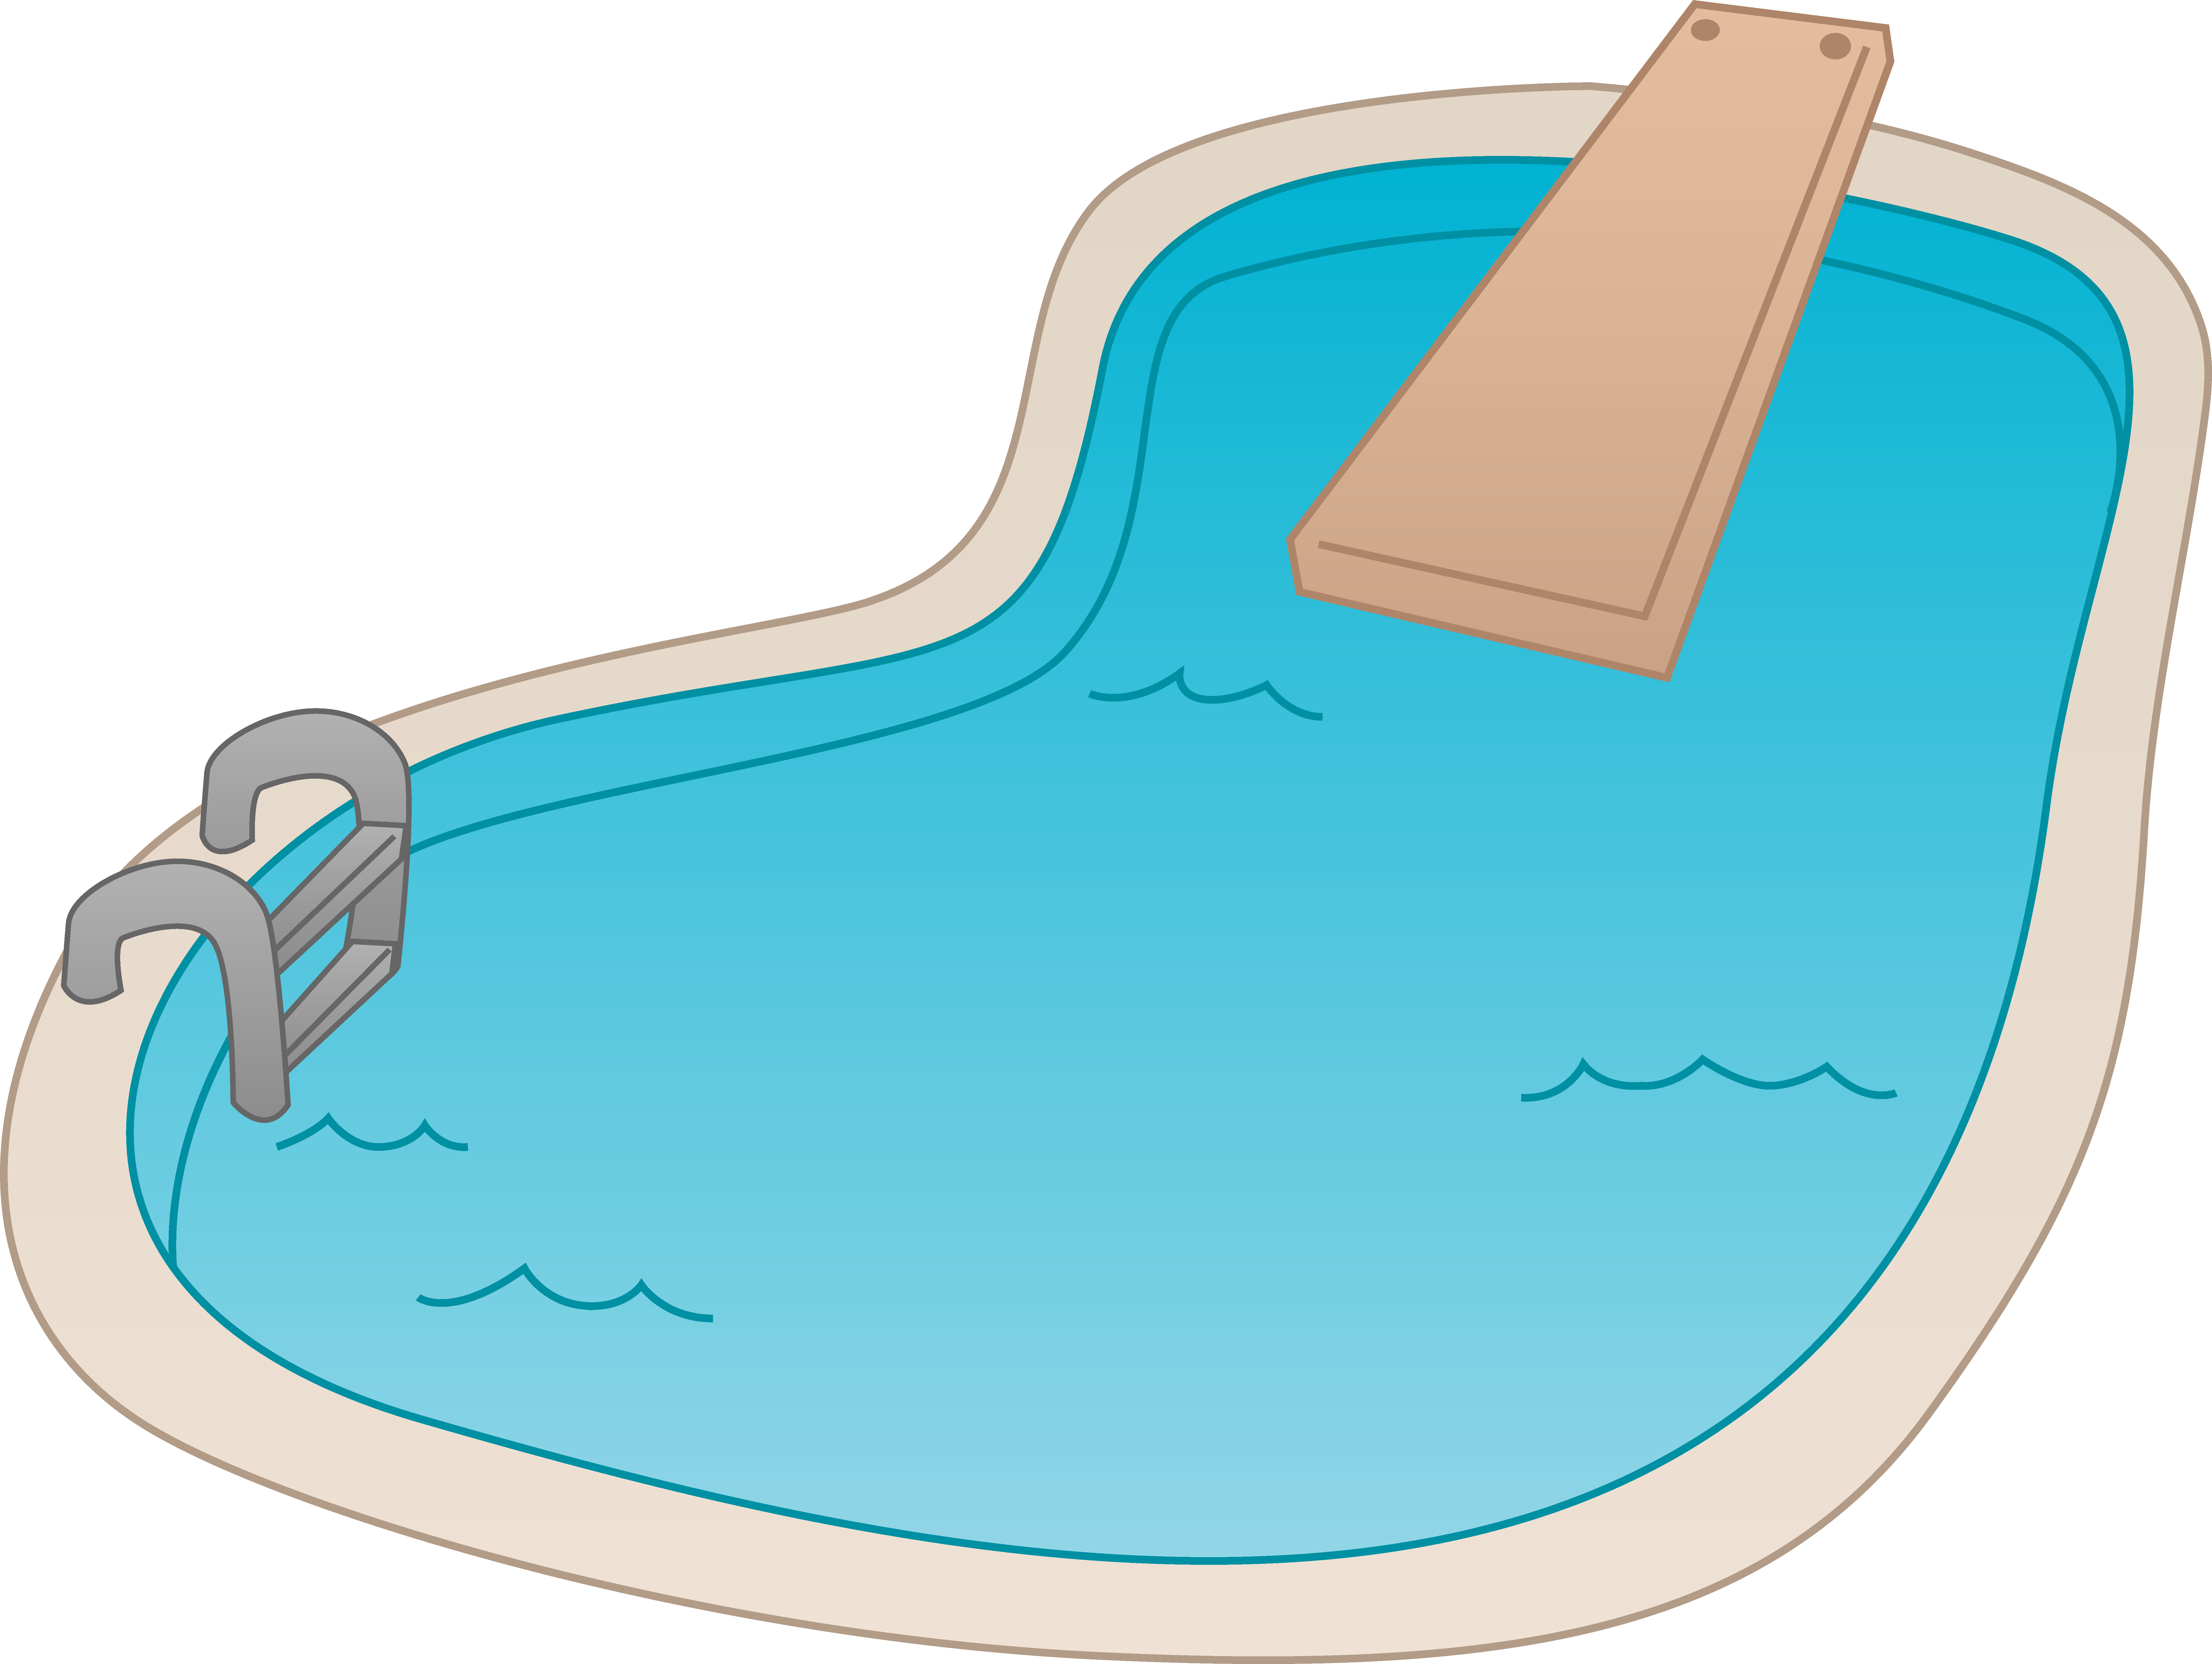 Swimming pool clipart png. Collection of images